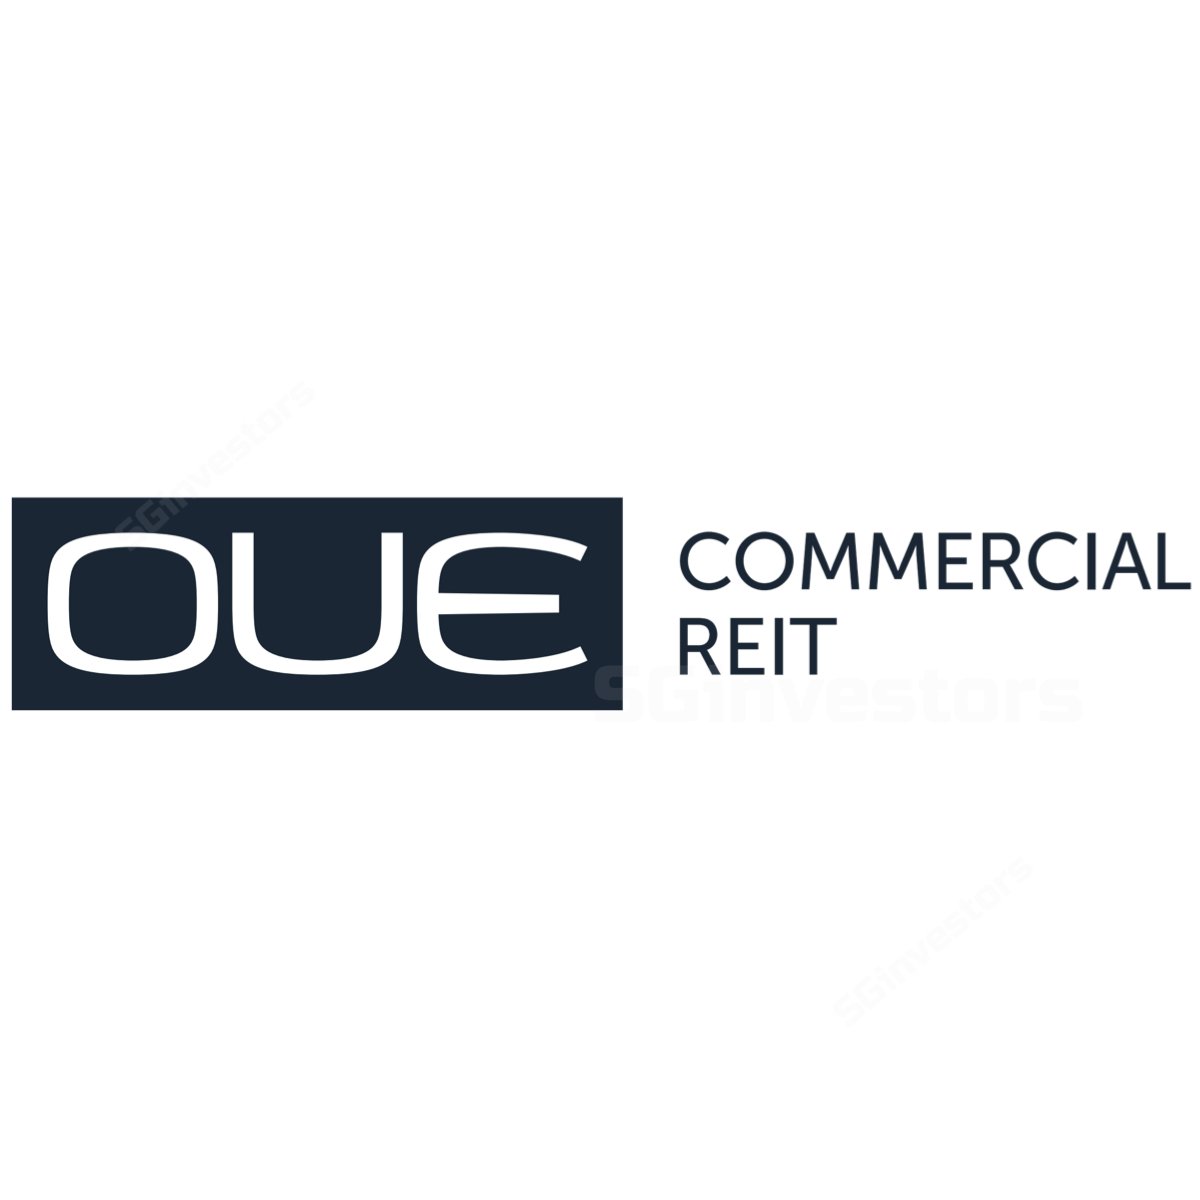 OUE Commercial REIT - CGS-CIMB Research 2018-09-11: Deepening Cbd Office Footprint